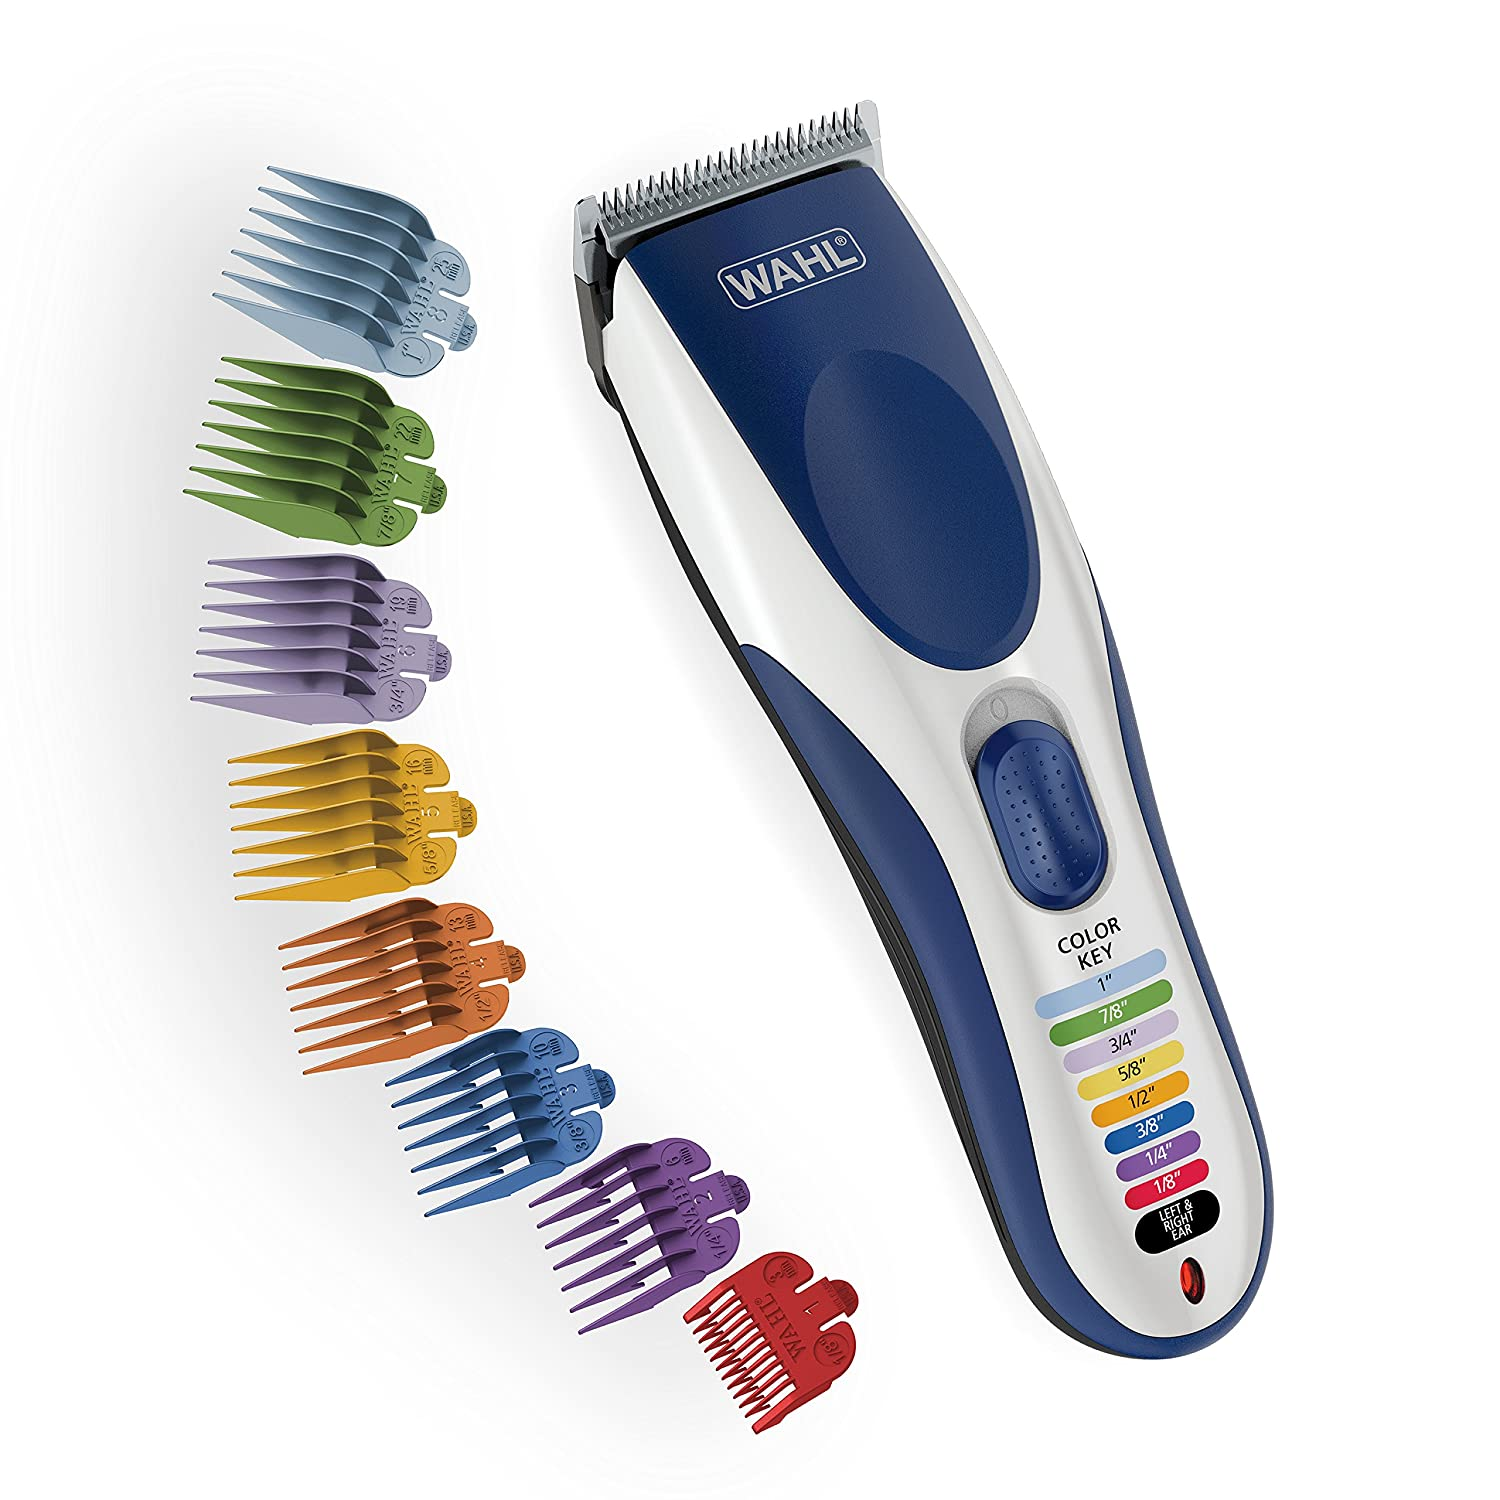 Wahl Color Pro Cordless Rechargeable Hair Trimmer – Easy Color-Coded Guide Combs